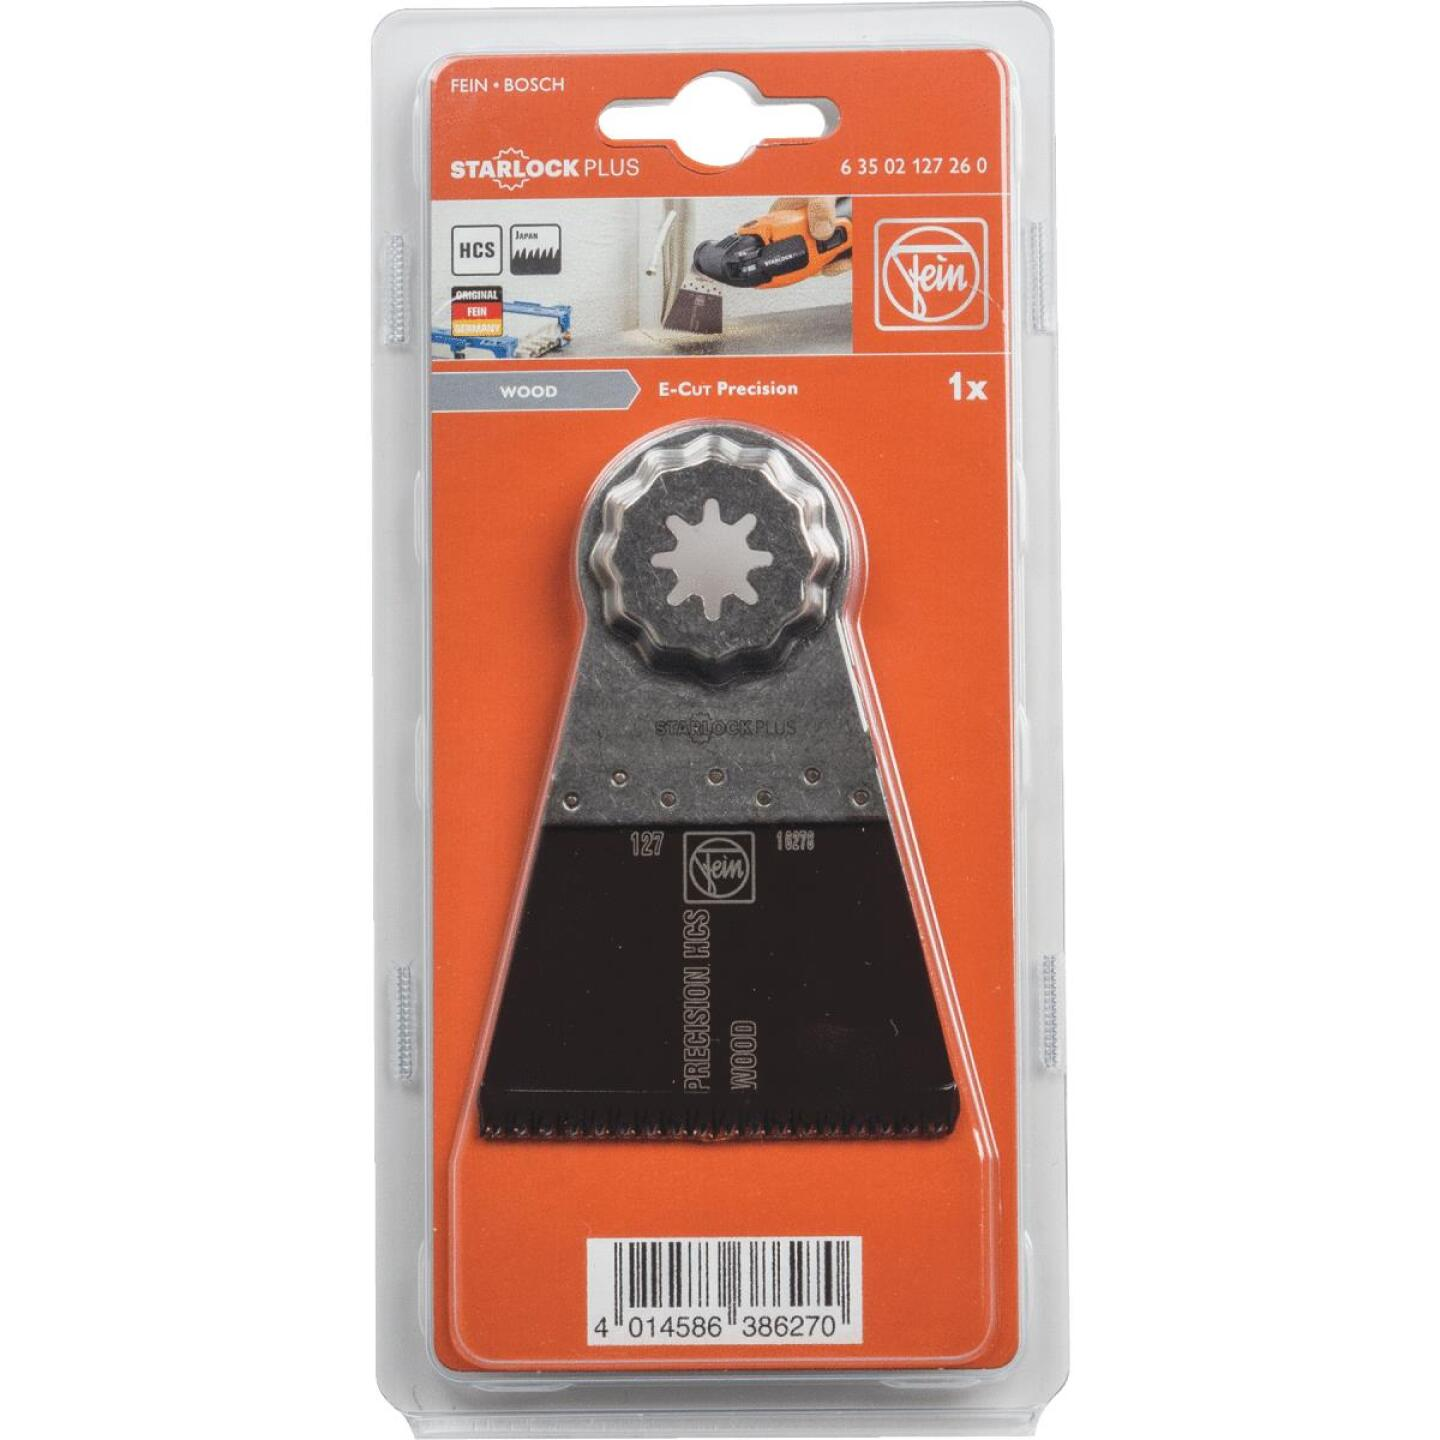 Fein Starlock 2-9/16 In. Steel Precision E-Cut Oscilating Blade Image 2